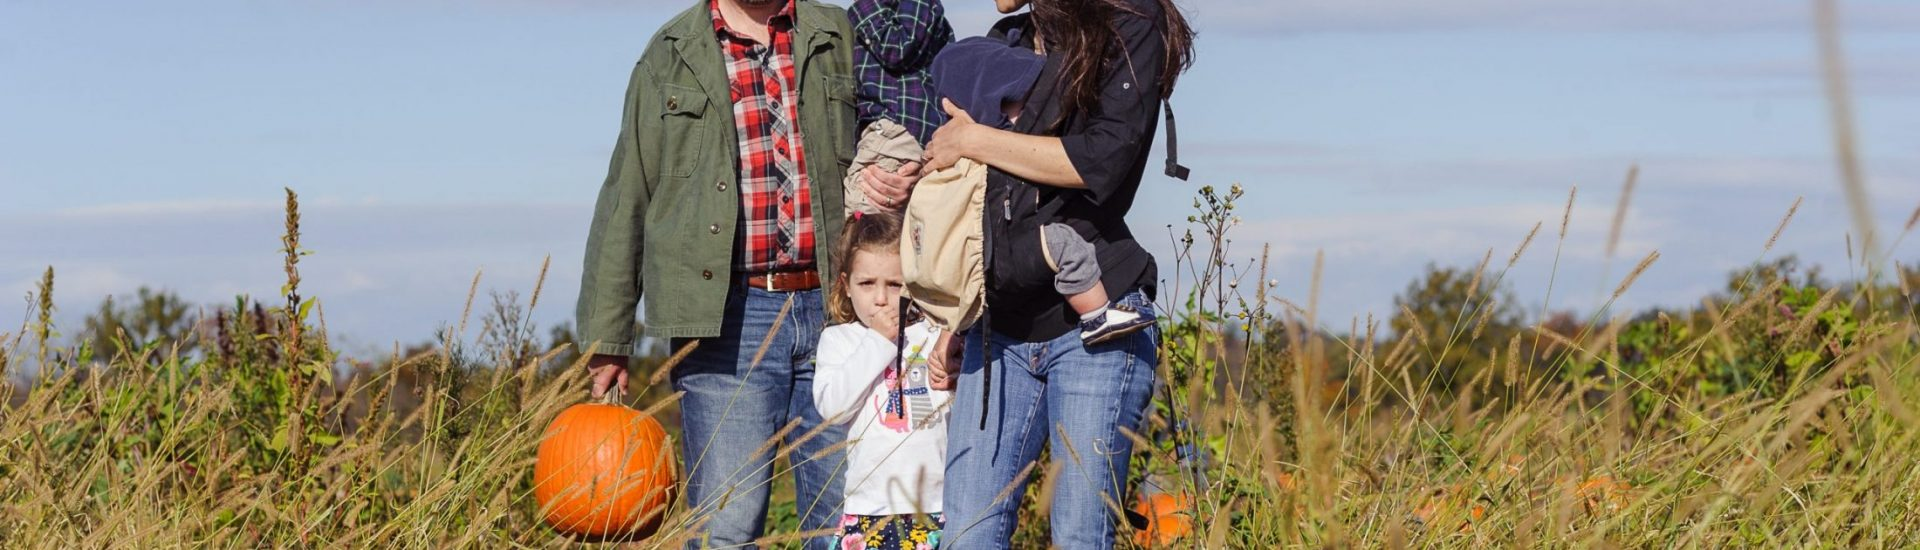 DC widow blog writer Marjorie Brimley with family in field